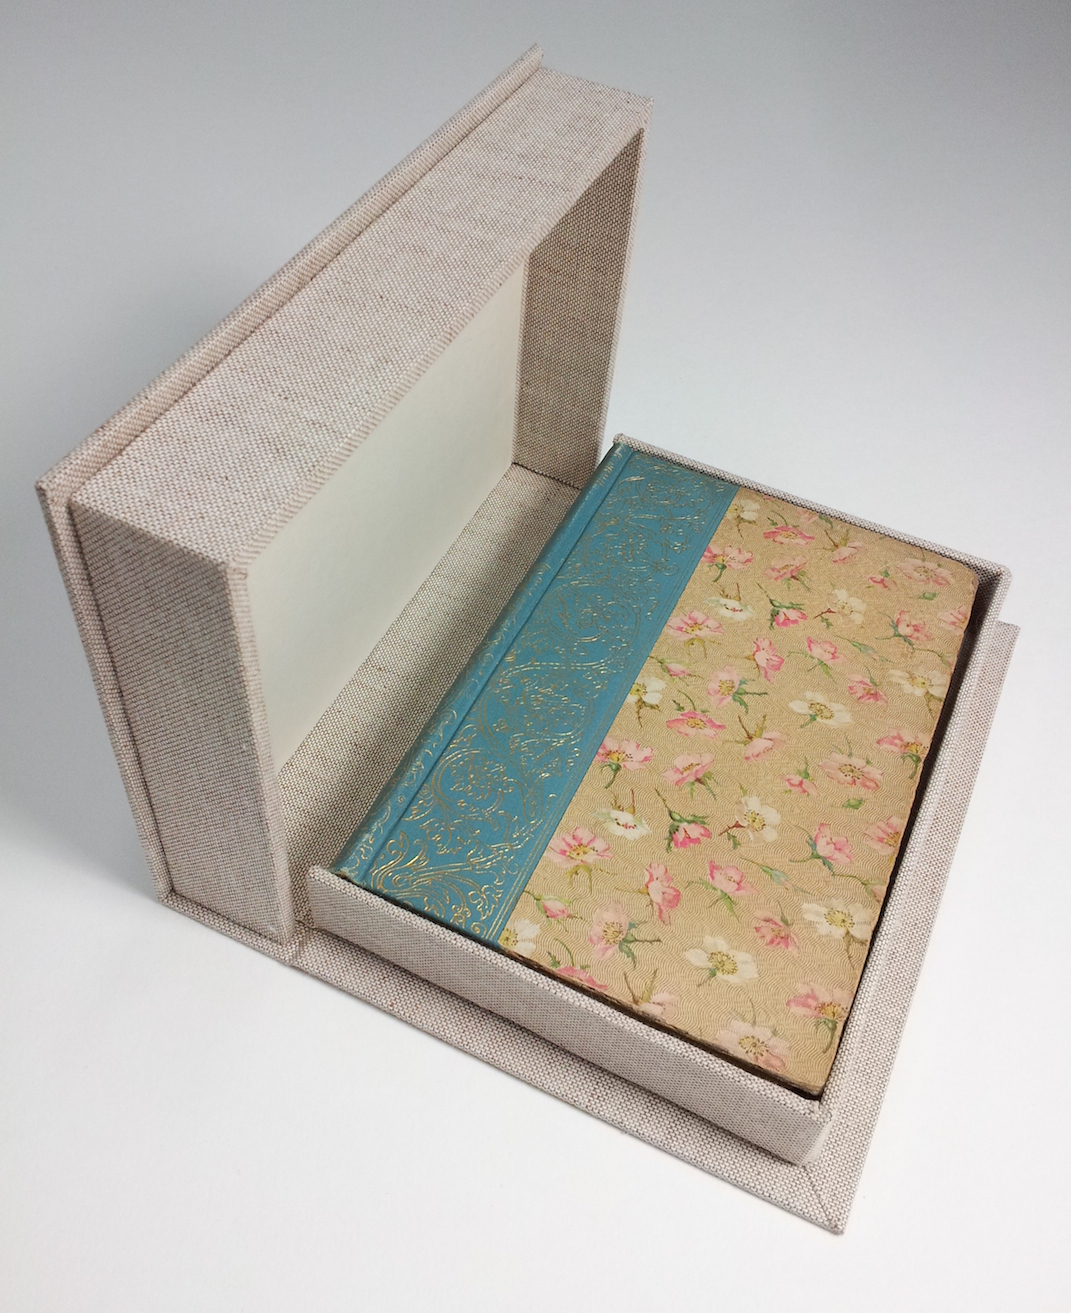 Conservation clamshell box